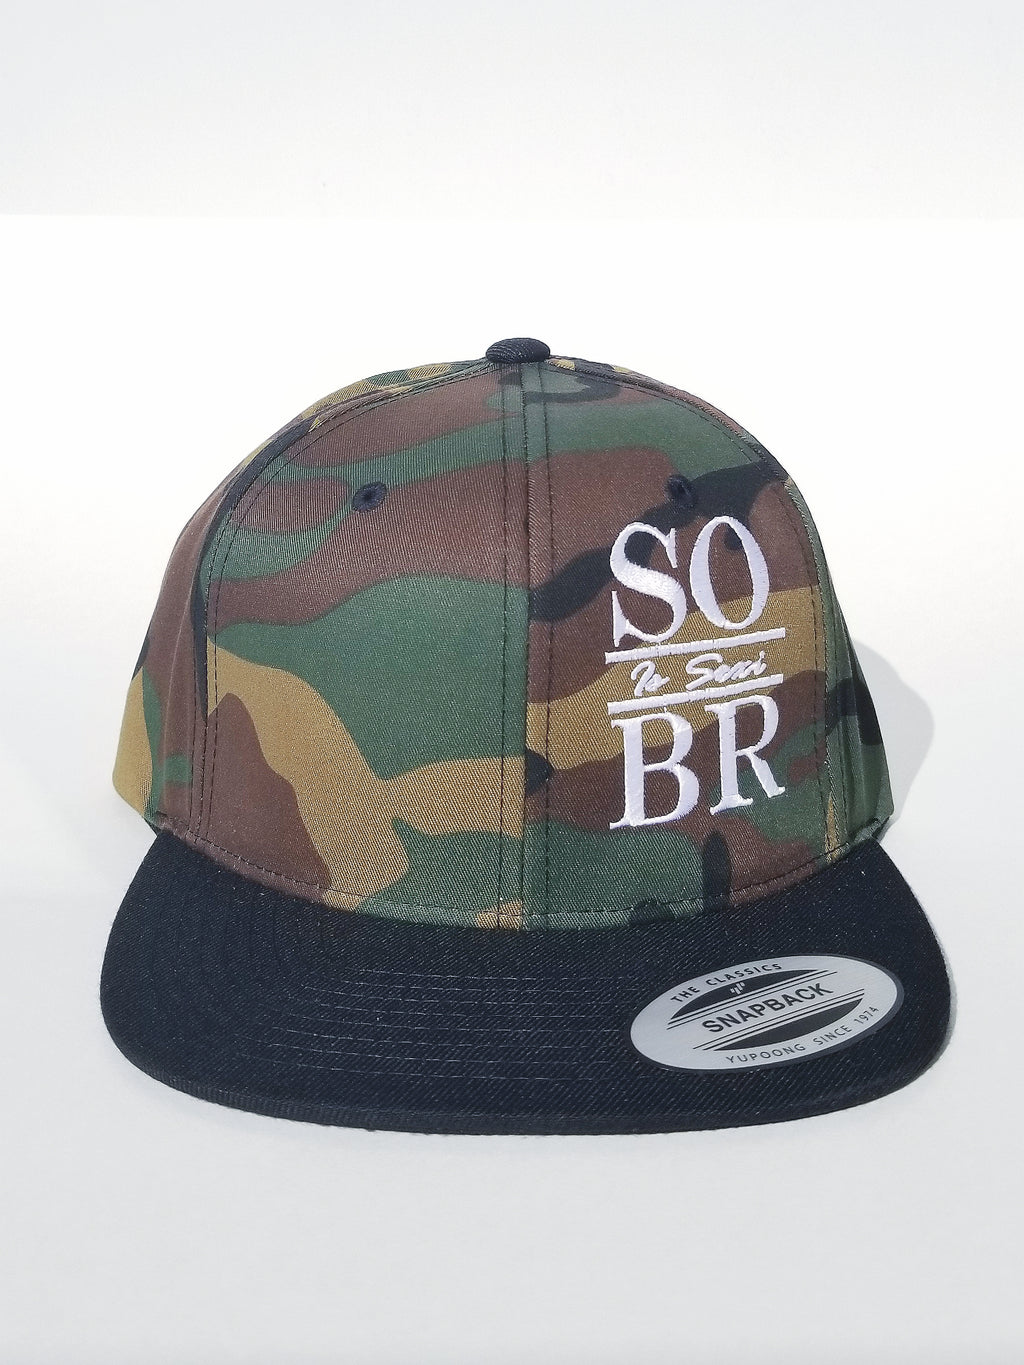 SOBR is Sexi Snapback